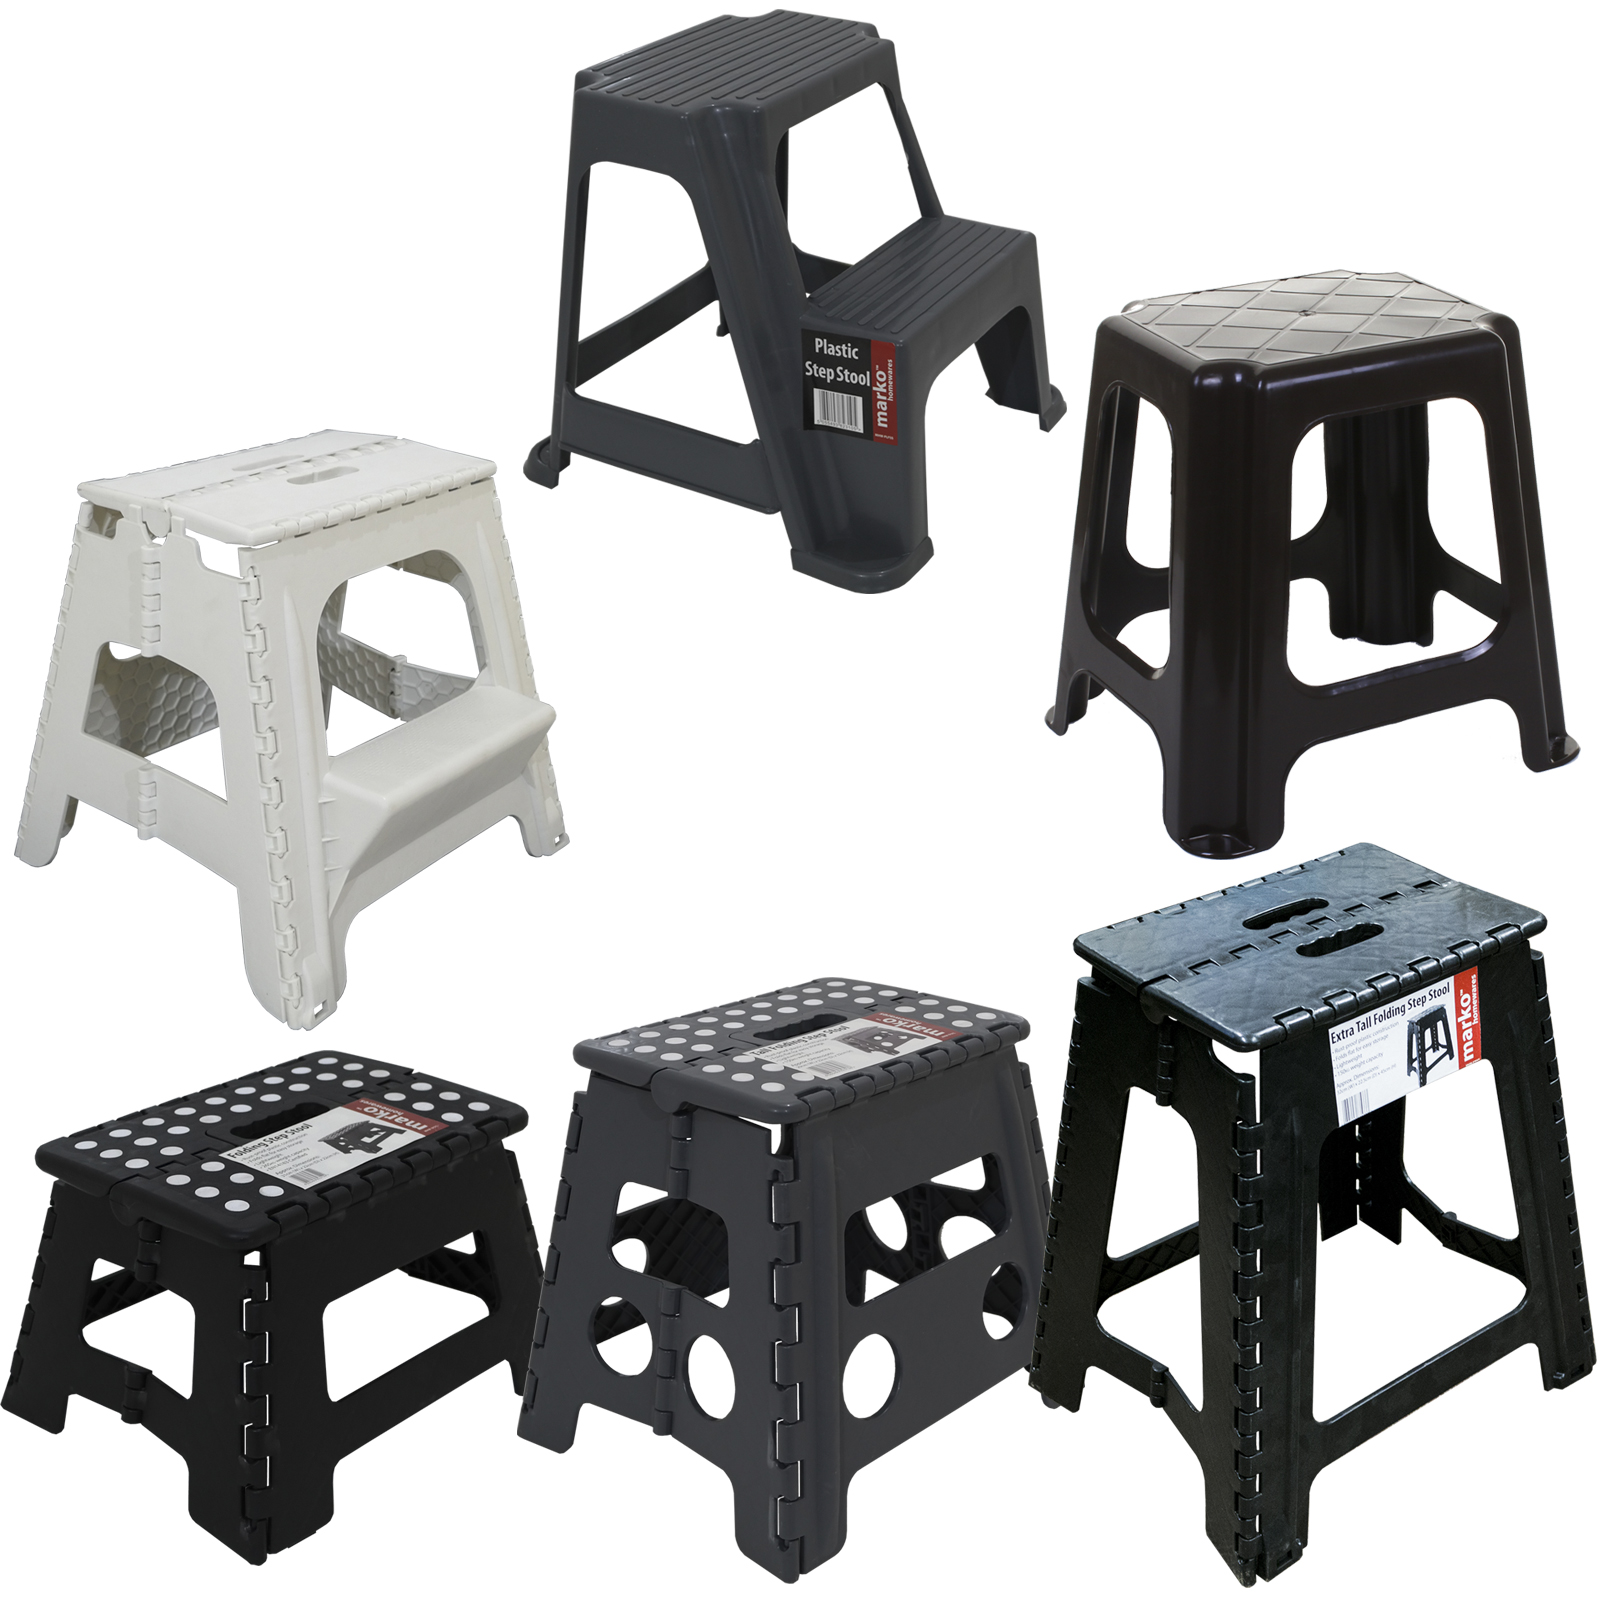 Phenomenal Details About Plastic Folding Step Up Stool Heavy Duty 2 Step Stool Multi Purpose Caravan Home Cjindustries Chair Design For Home Cjindustriesco